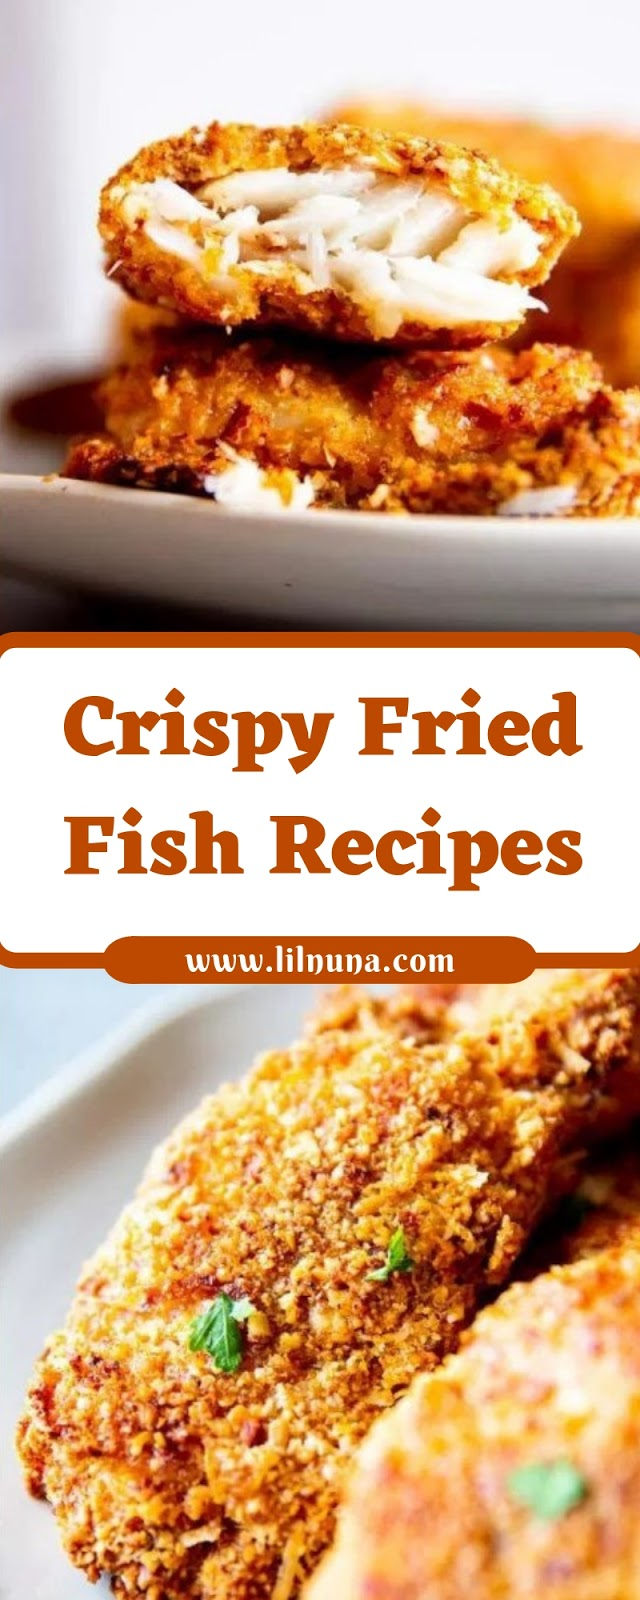 Crispy Fried Fish Recipes